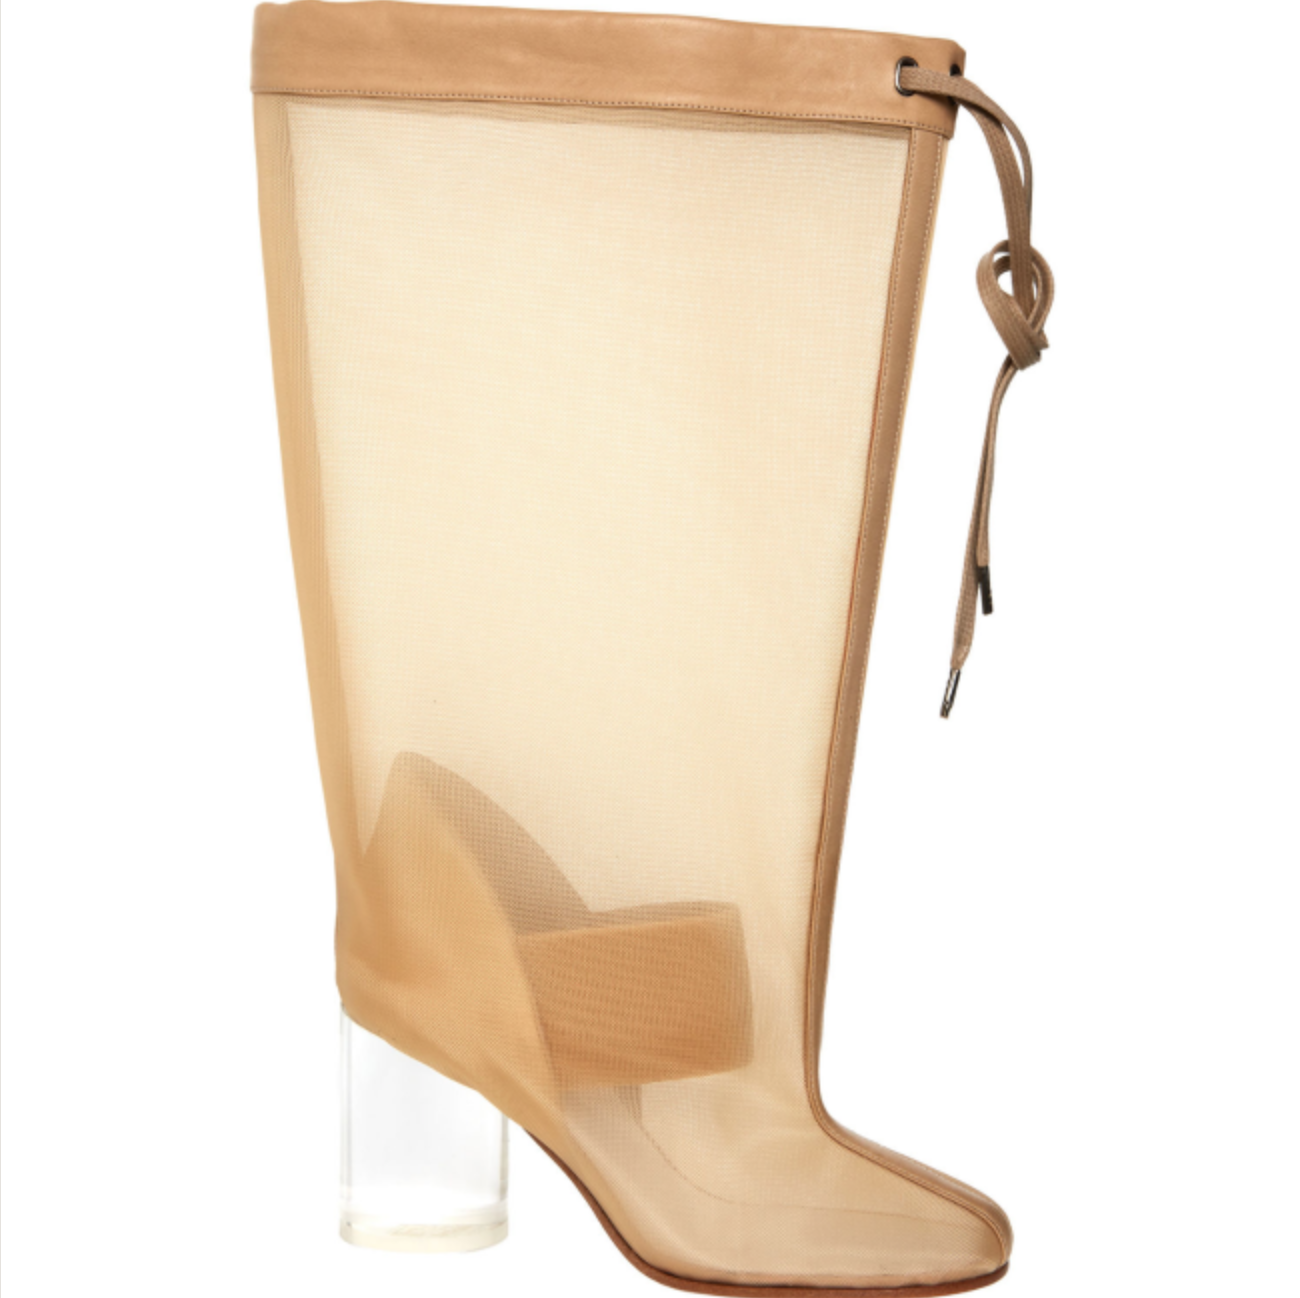 MAISON Leather-trimmed MARTIN MARGIELA Leather-trimmed MAISON Mesh & Perspex Stiefel UK 4 EU 37 049964